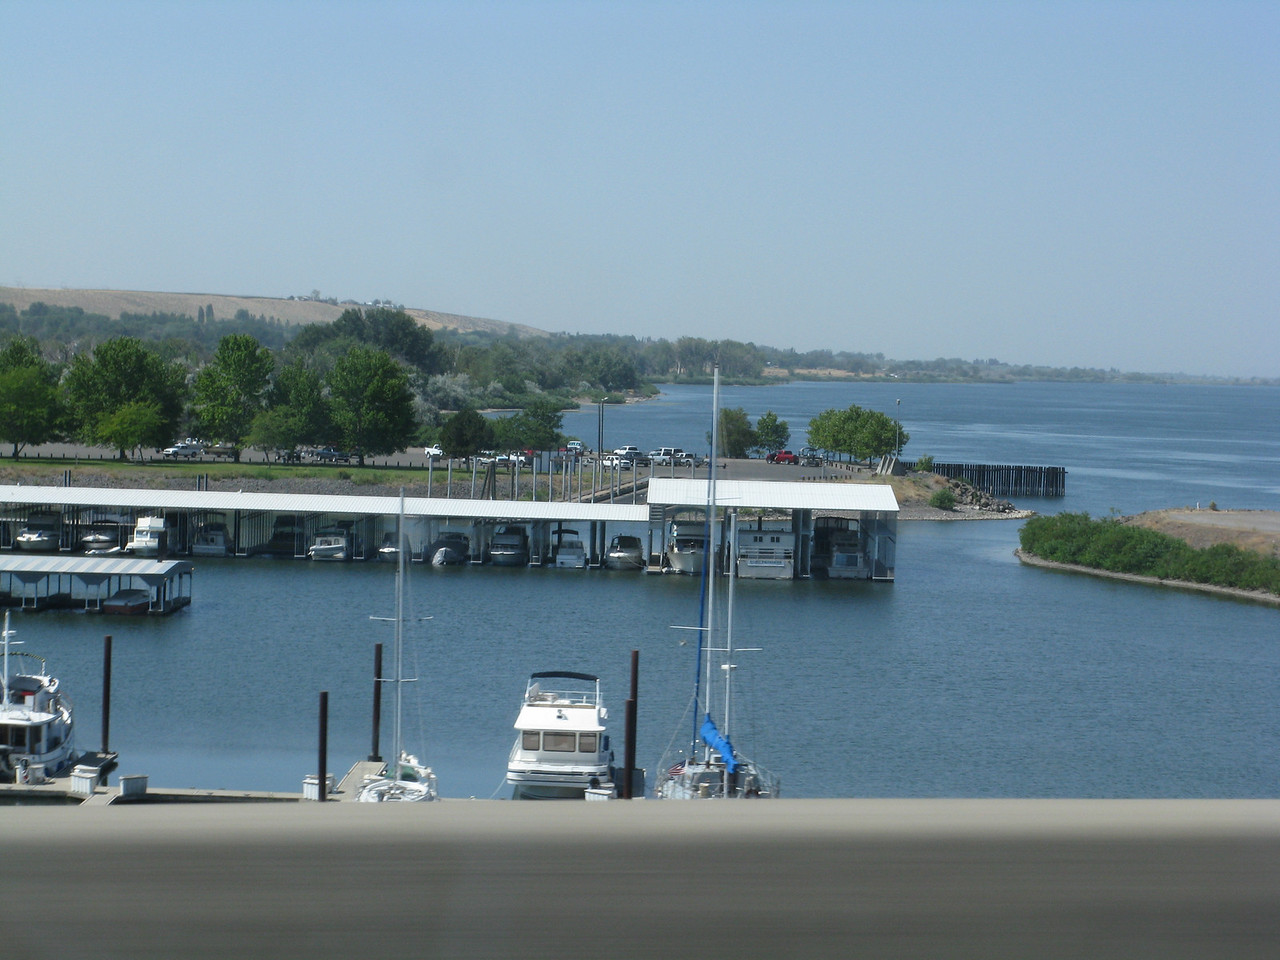 Here is a small marina with a couple sailboats on the Oregon side of the Columbia River.  Not far from the Columbia River bridge on i-82, we turned onto I-84 in eastern Oregon.  From this point in eastern Oregon to western Wyoming, we followed the general direction of the historic Oregon Trail.